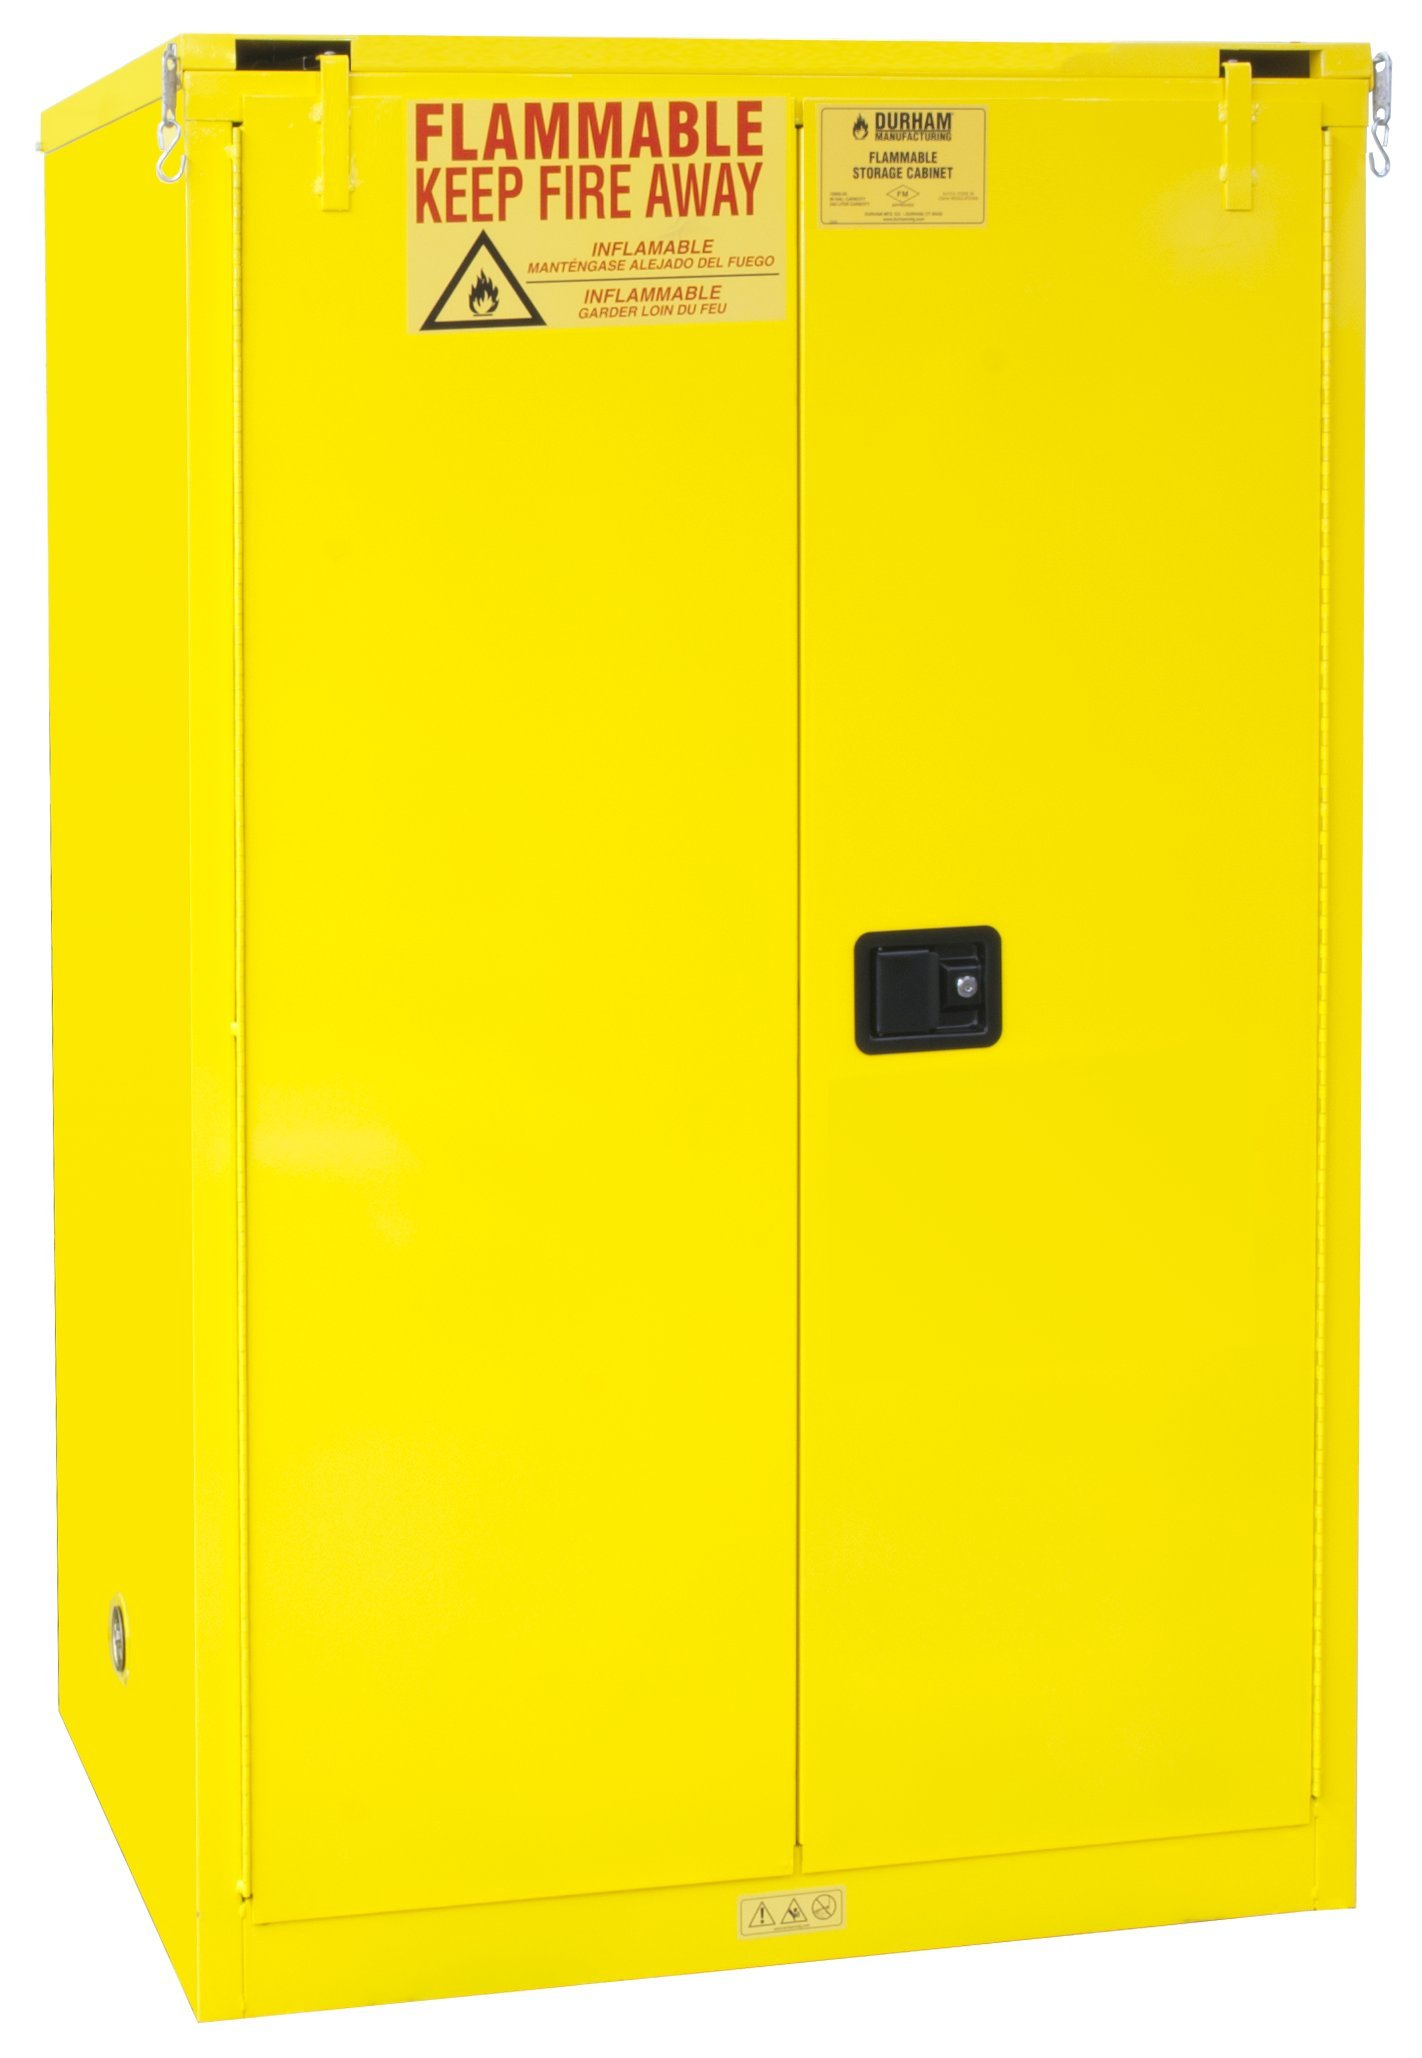 Durham FM Approved 1090S-50 Welded 16 Gauge Steel Flammable Safety Self Closing Door Cabinet, 2 Shelves, 90 gallons Capacity, 34'' Length x 43'' Width x 65'' Height, Yellow Powder Coat Finish